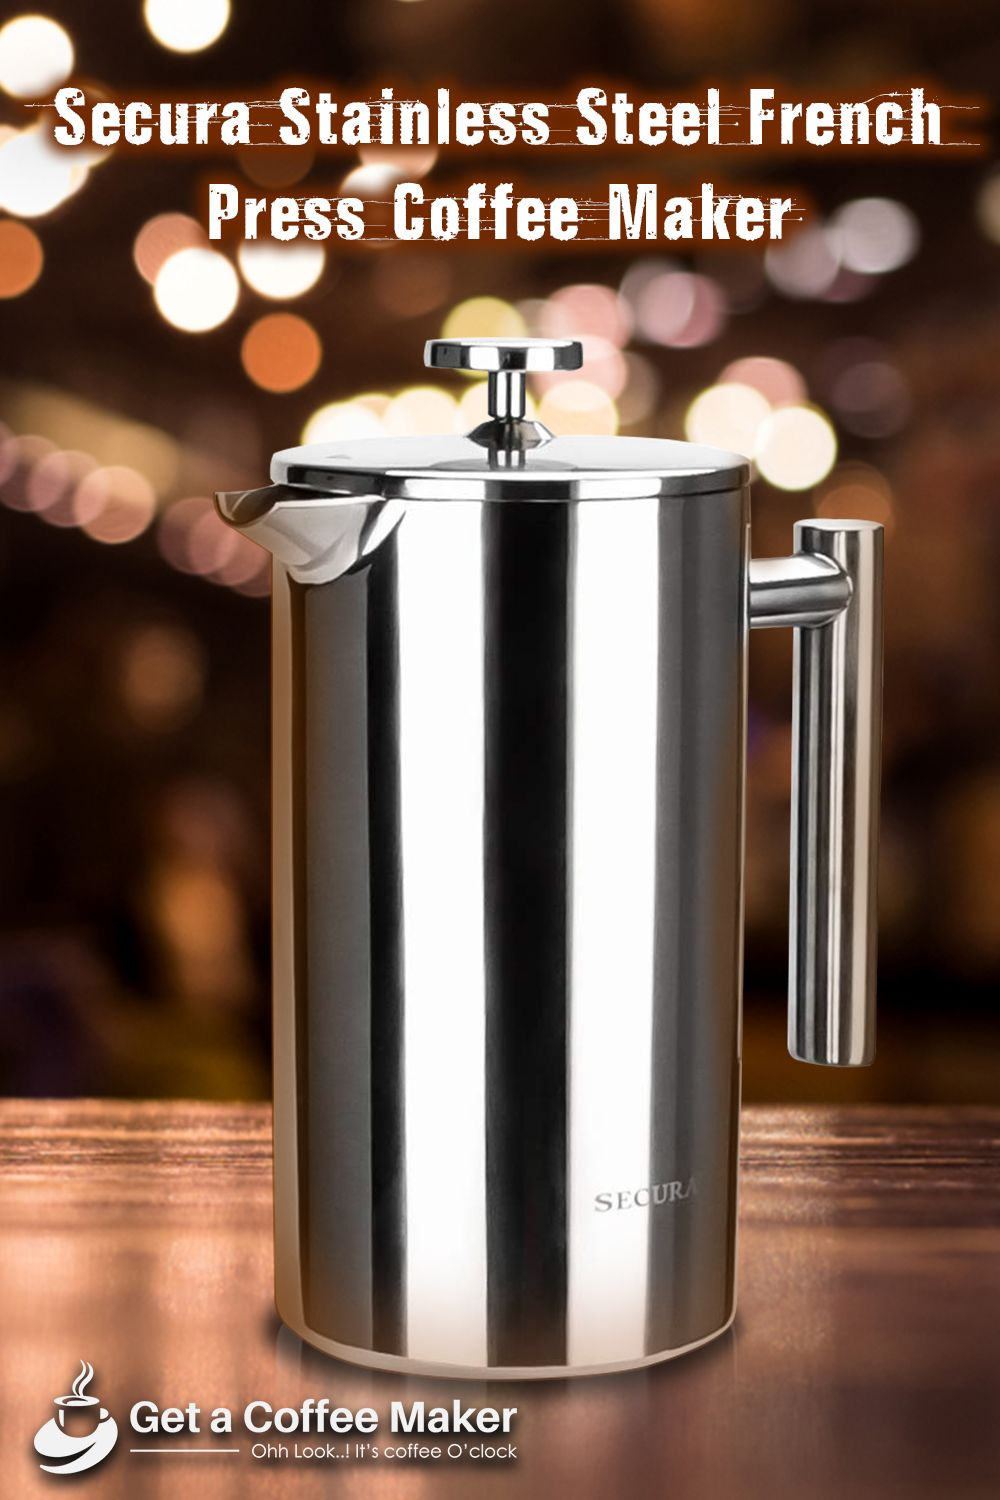 Top 10 French Press Coffee Makers June 2020 Reviews Buyers Guide French Press Coffee Maker Coffee Maker French Press Coffee